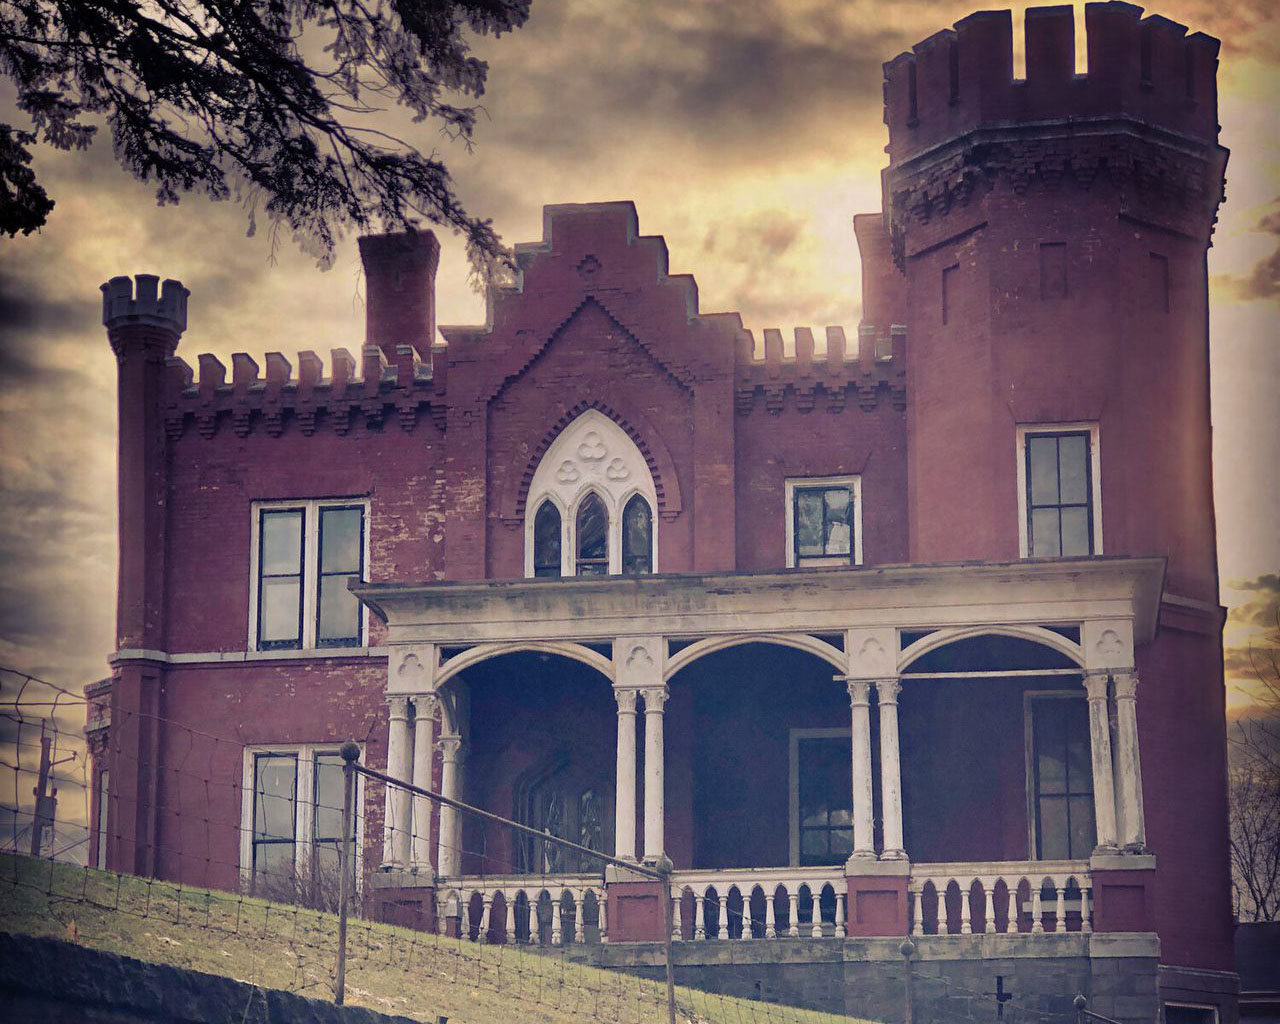 Auction for 'Haunted' Mansion Ends on Halloween